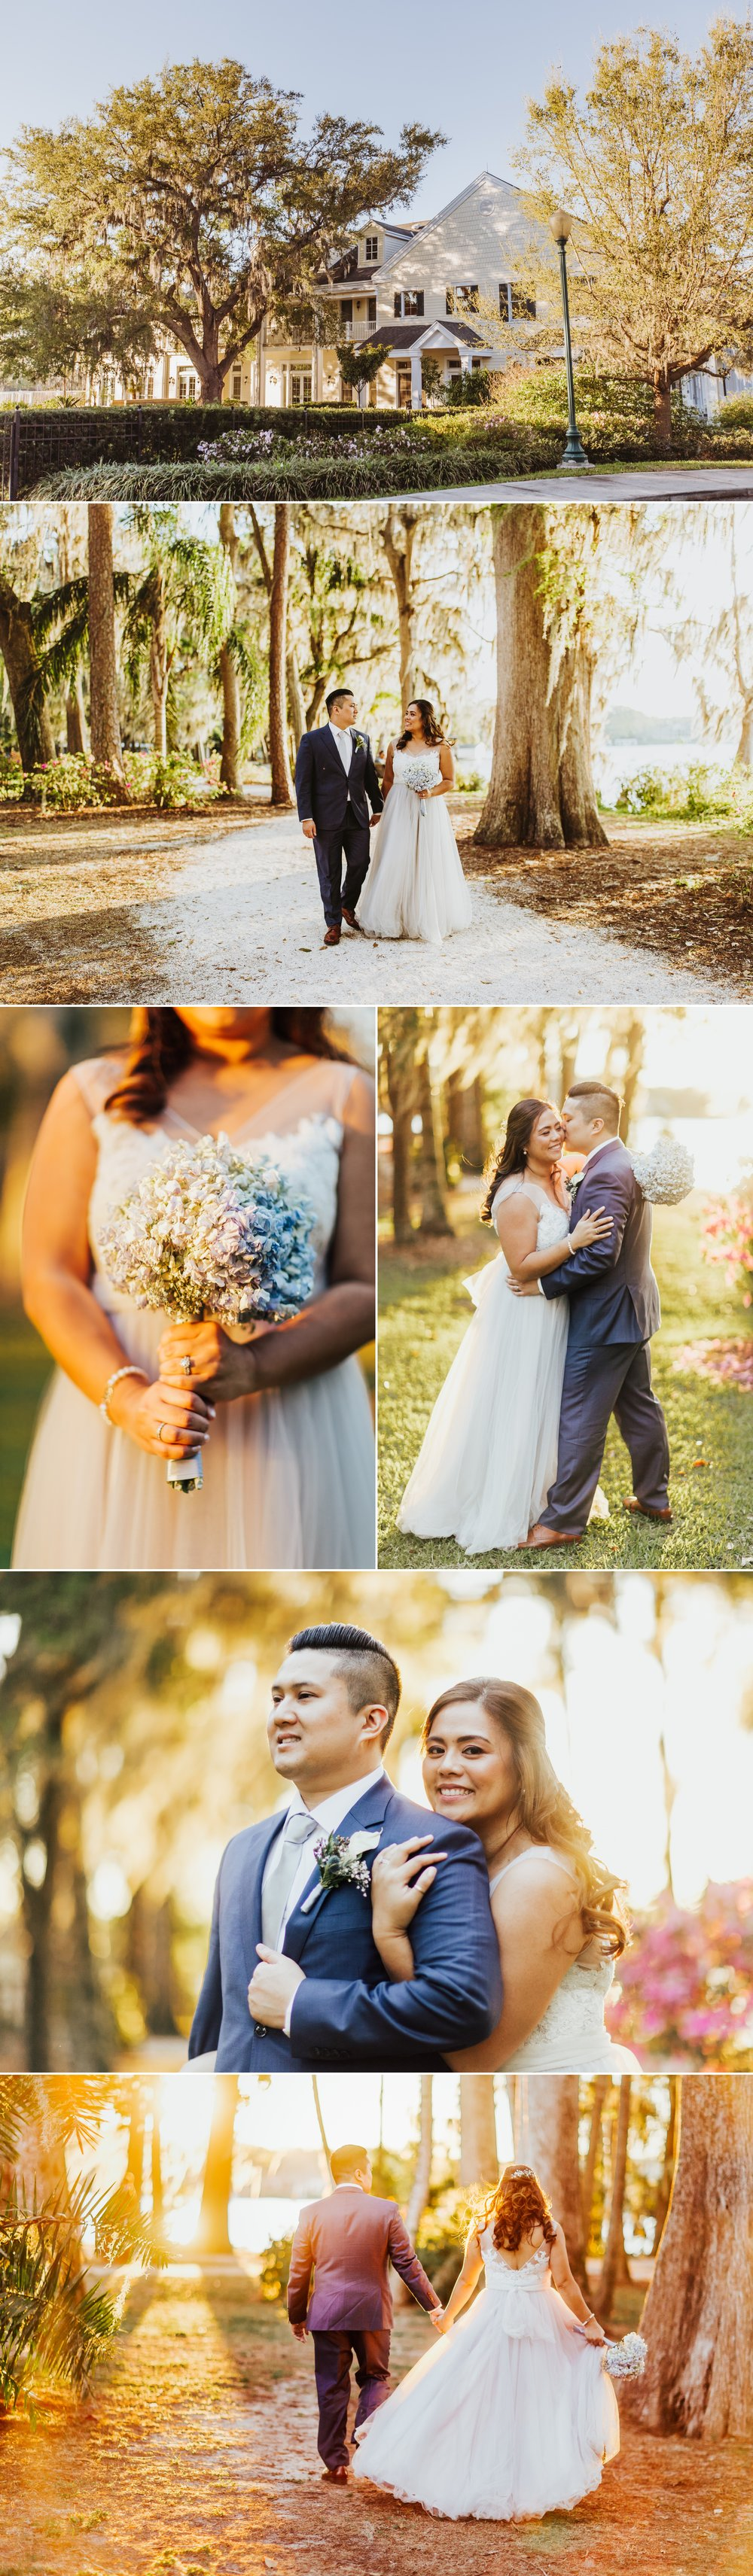 Romantic Leu Gardens Wedding Pictures - Winter Park Wedding Photographer Shaina DeCiryan- Effie+Phillip11.jpg